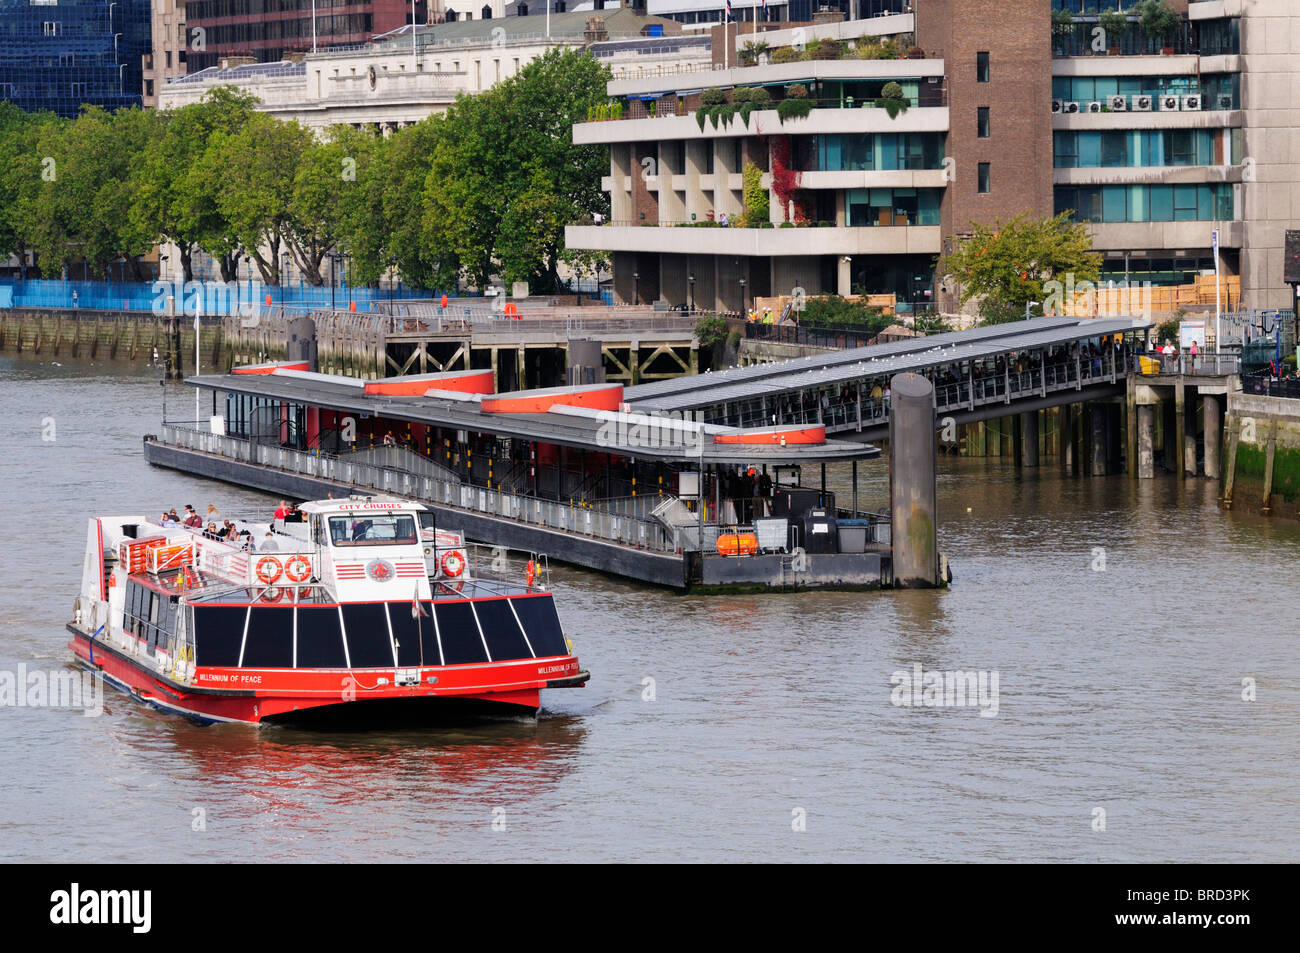 A City Cruises River Thames sightseeing tourist cruise boat at Tower Pier, London, England, UK - Stock Image